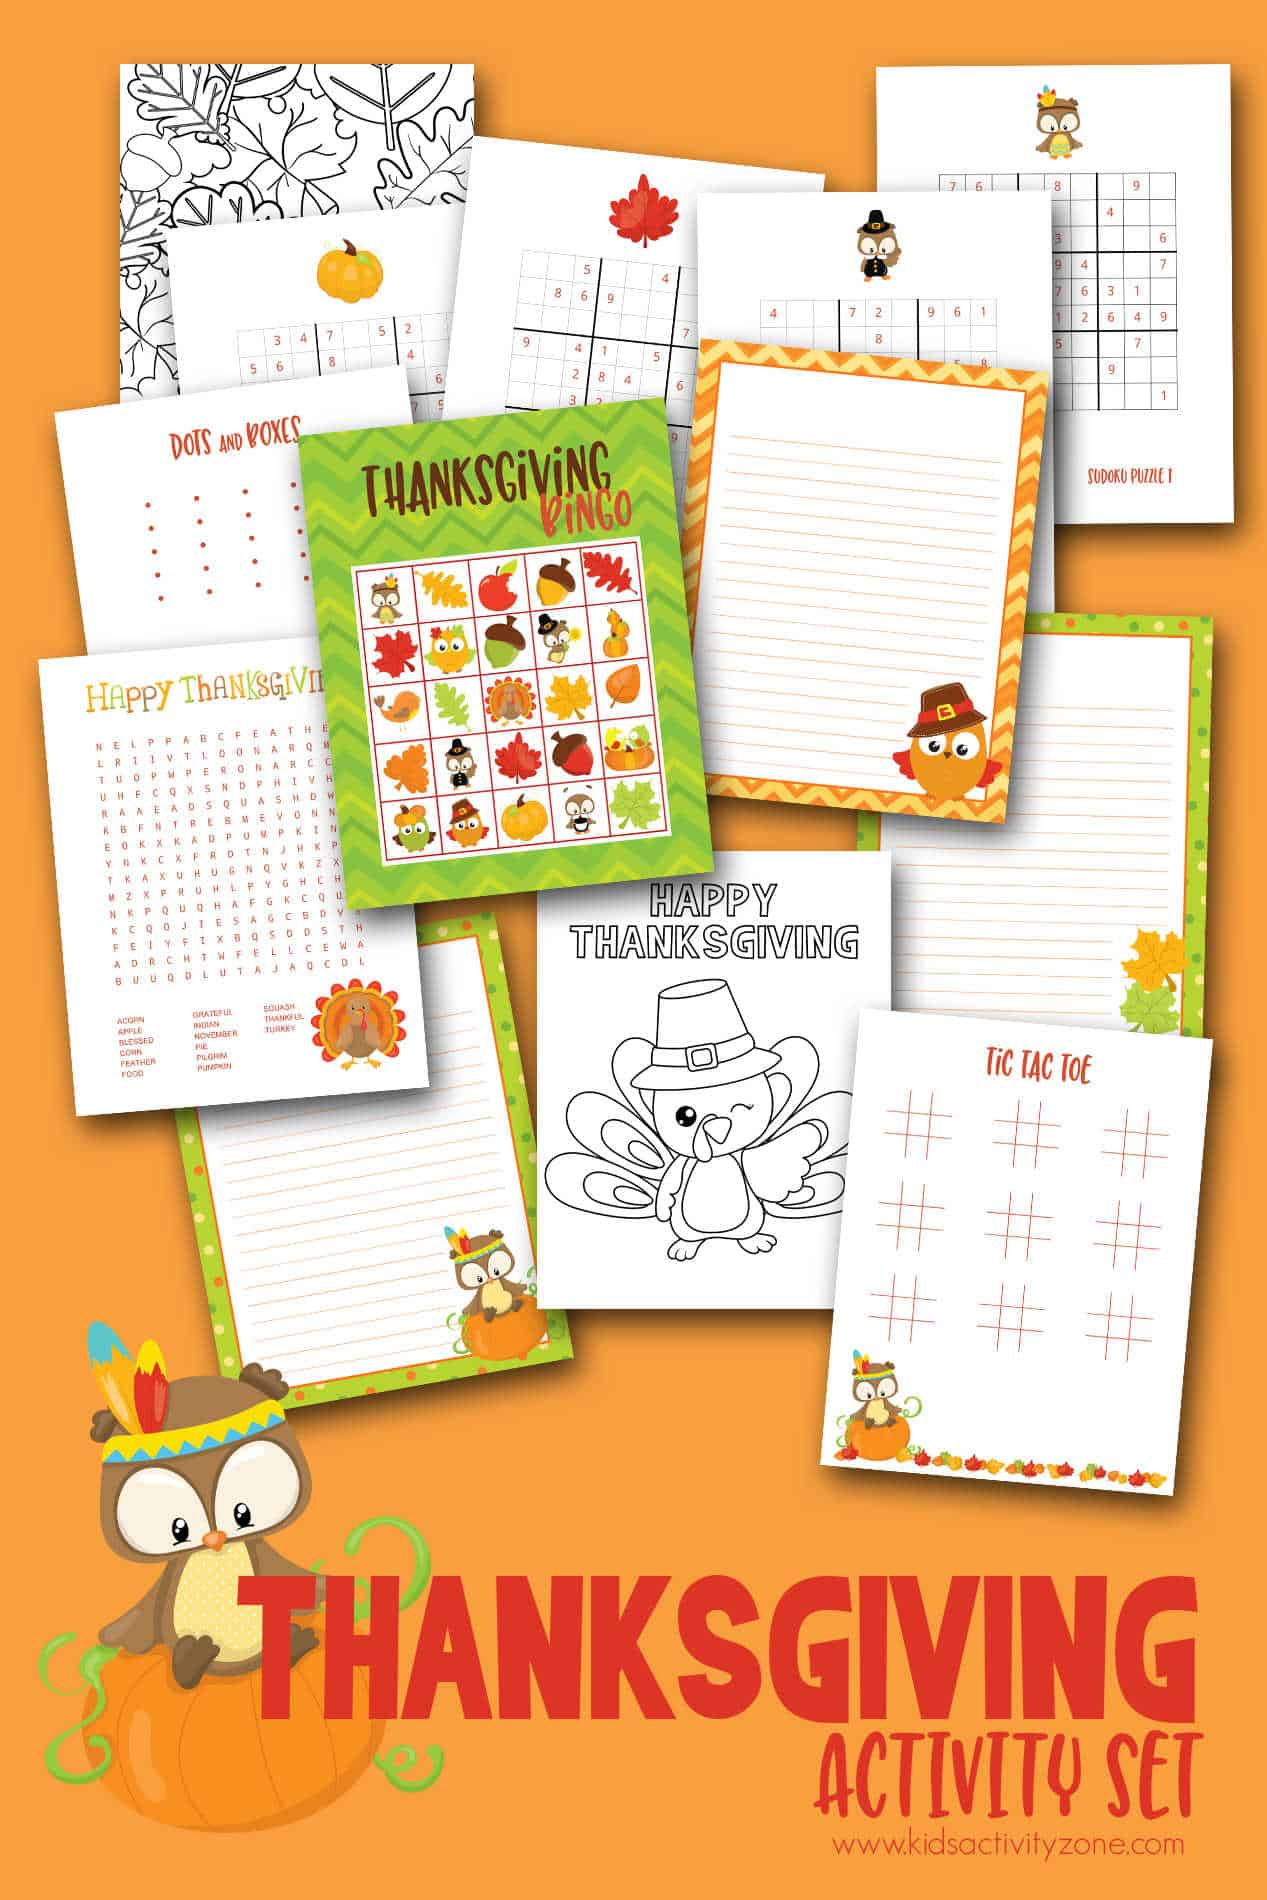 A great round up games, printables and more. This Free Thanksgiving Activities Printable includes a word find, coloring pages, Thanksgiving Bingo, Sudoku games, Tic Tac Toe and more!